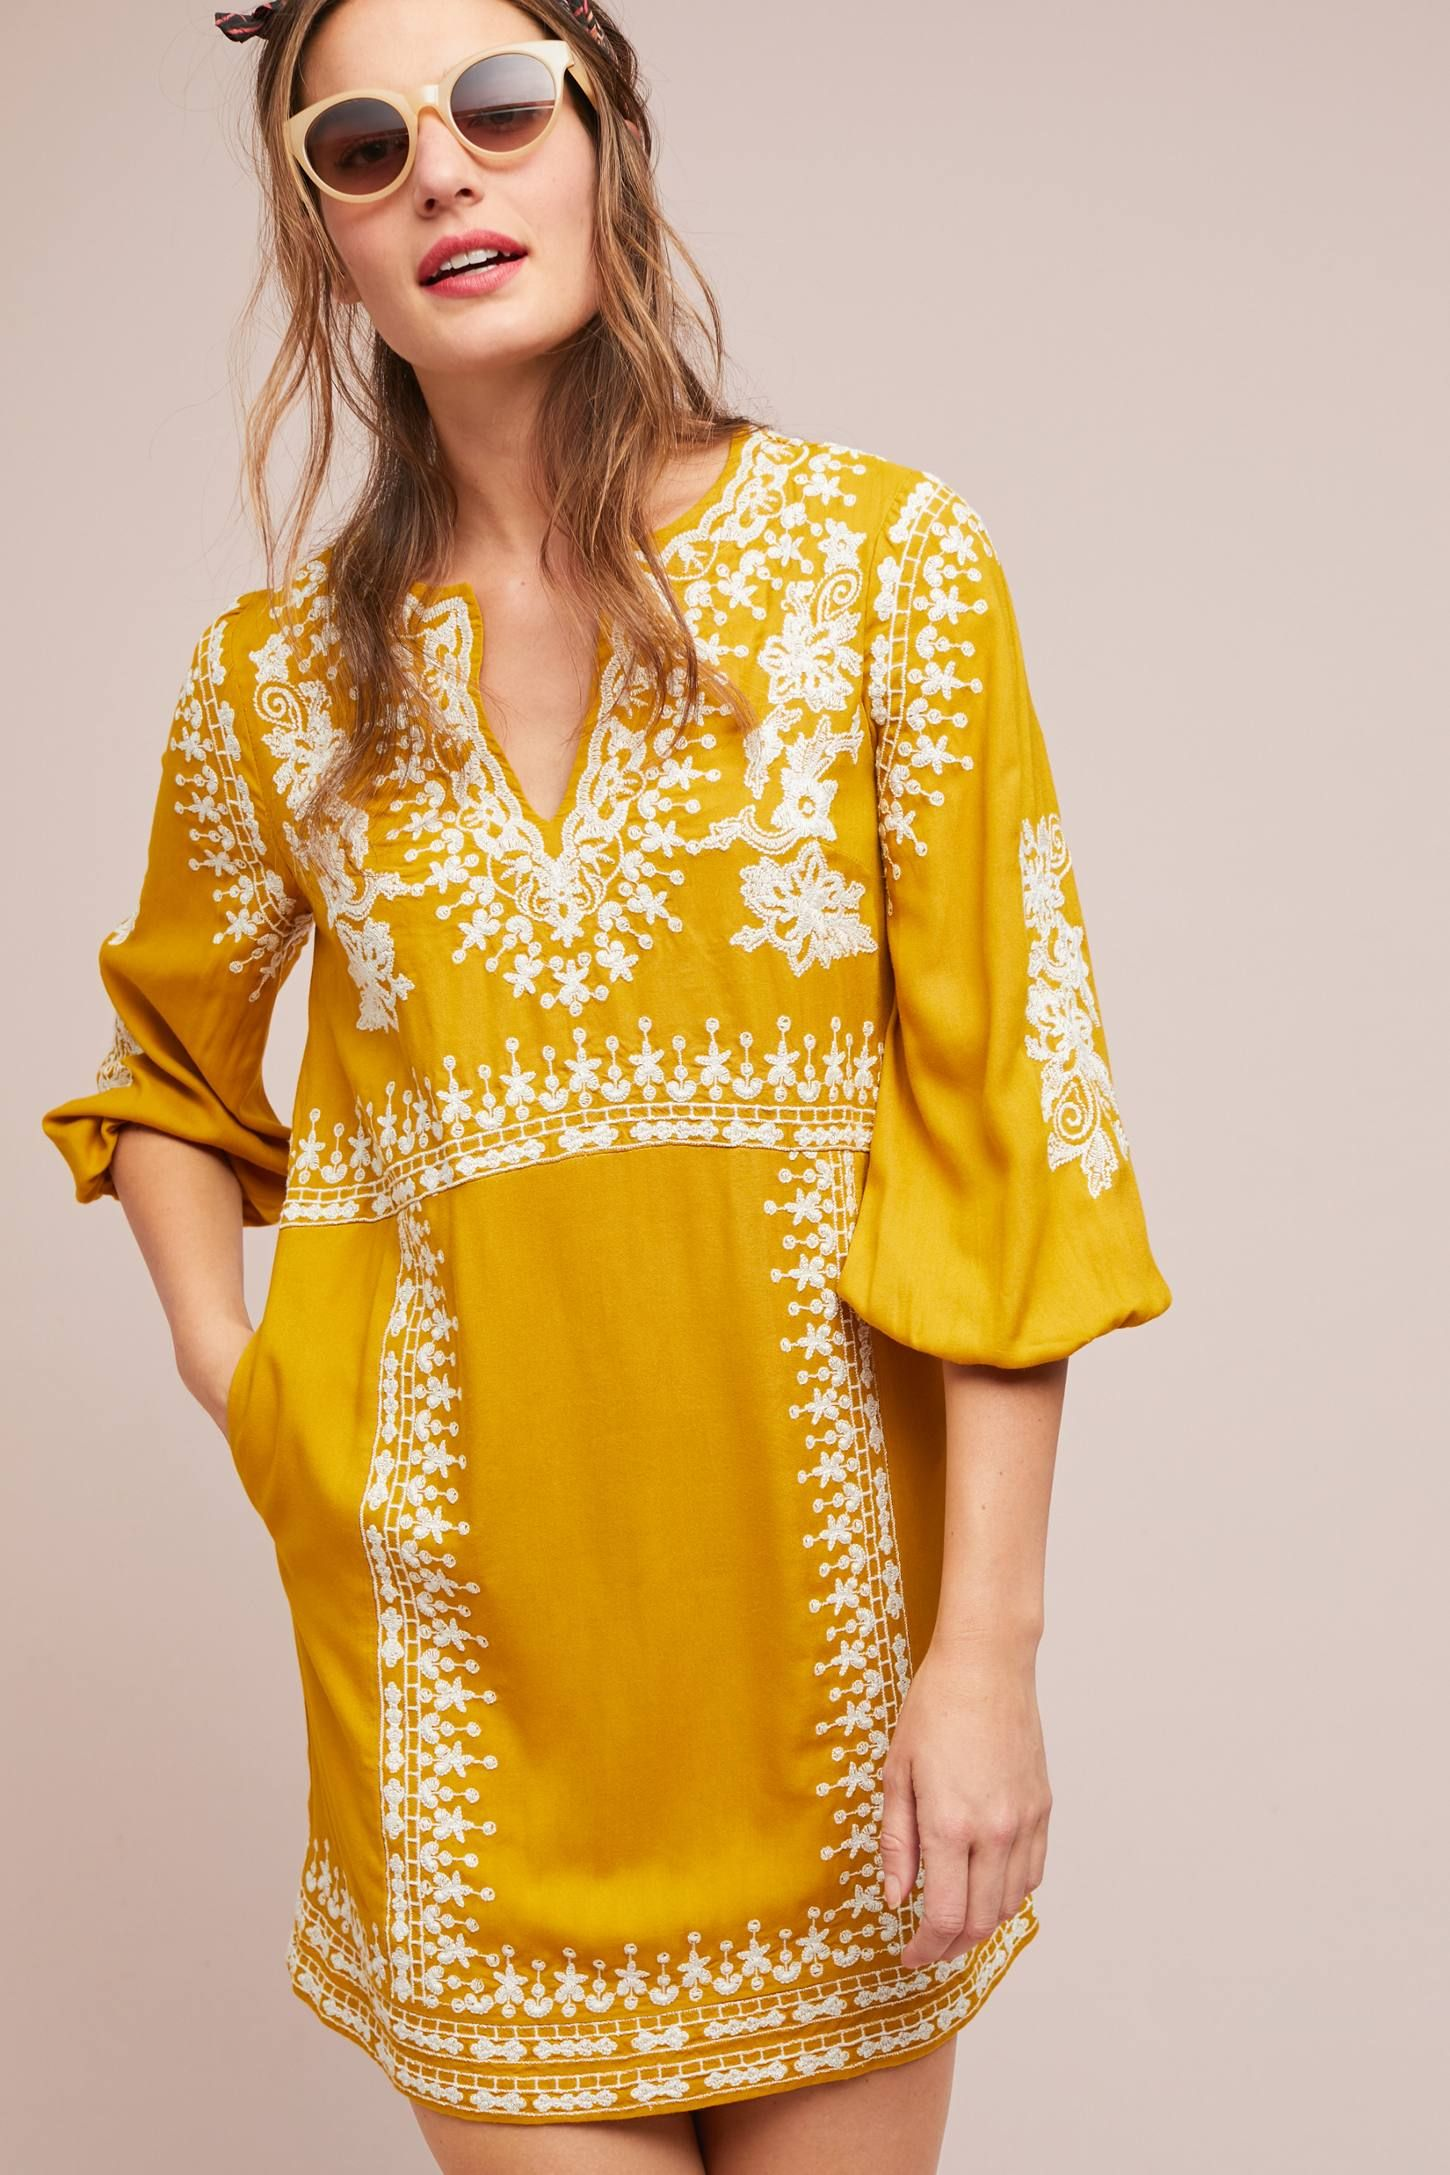 Shiloh Embroidered Tunic Dress Embroidered Tunic Dress Summer Tunic Dress Embroidered Tunic [ 2175 x 1450 Pixel ]